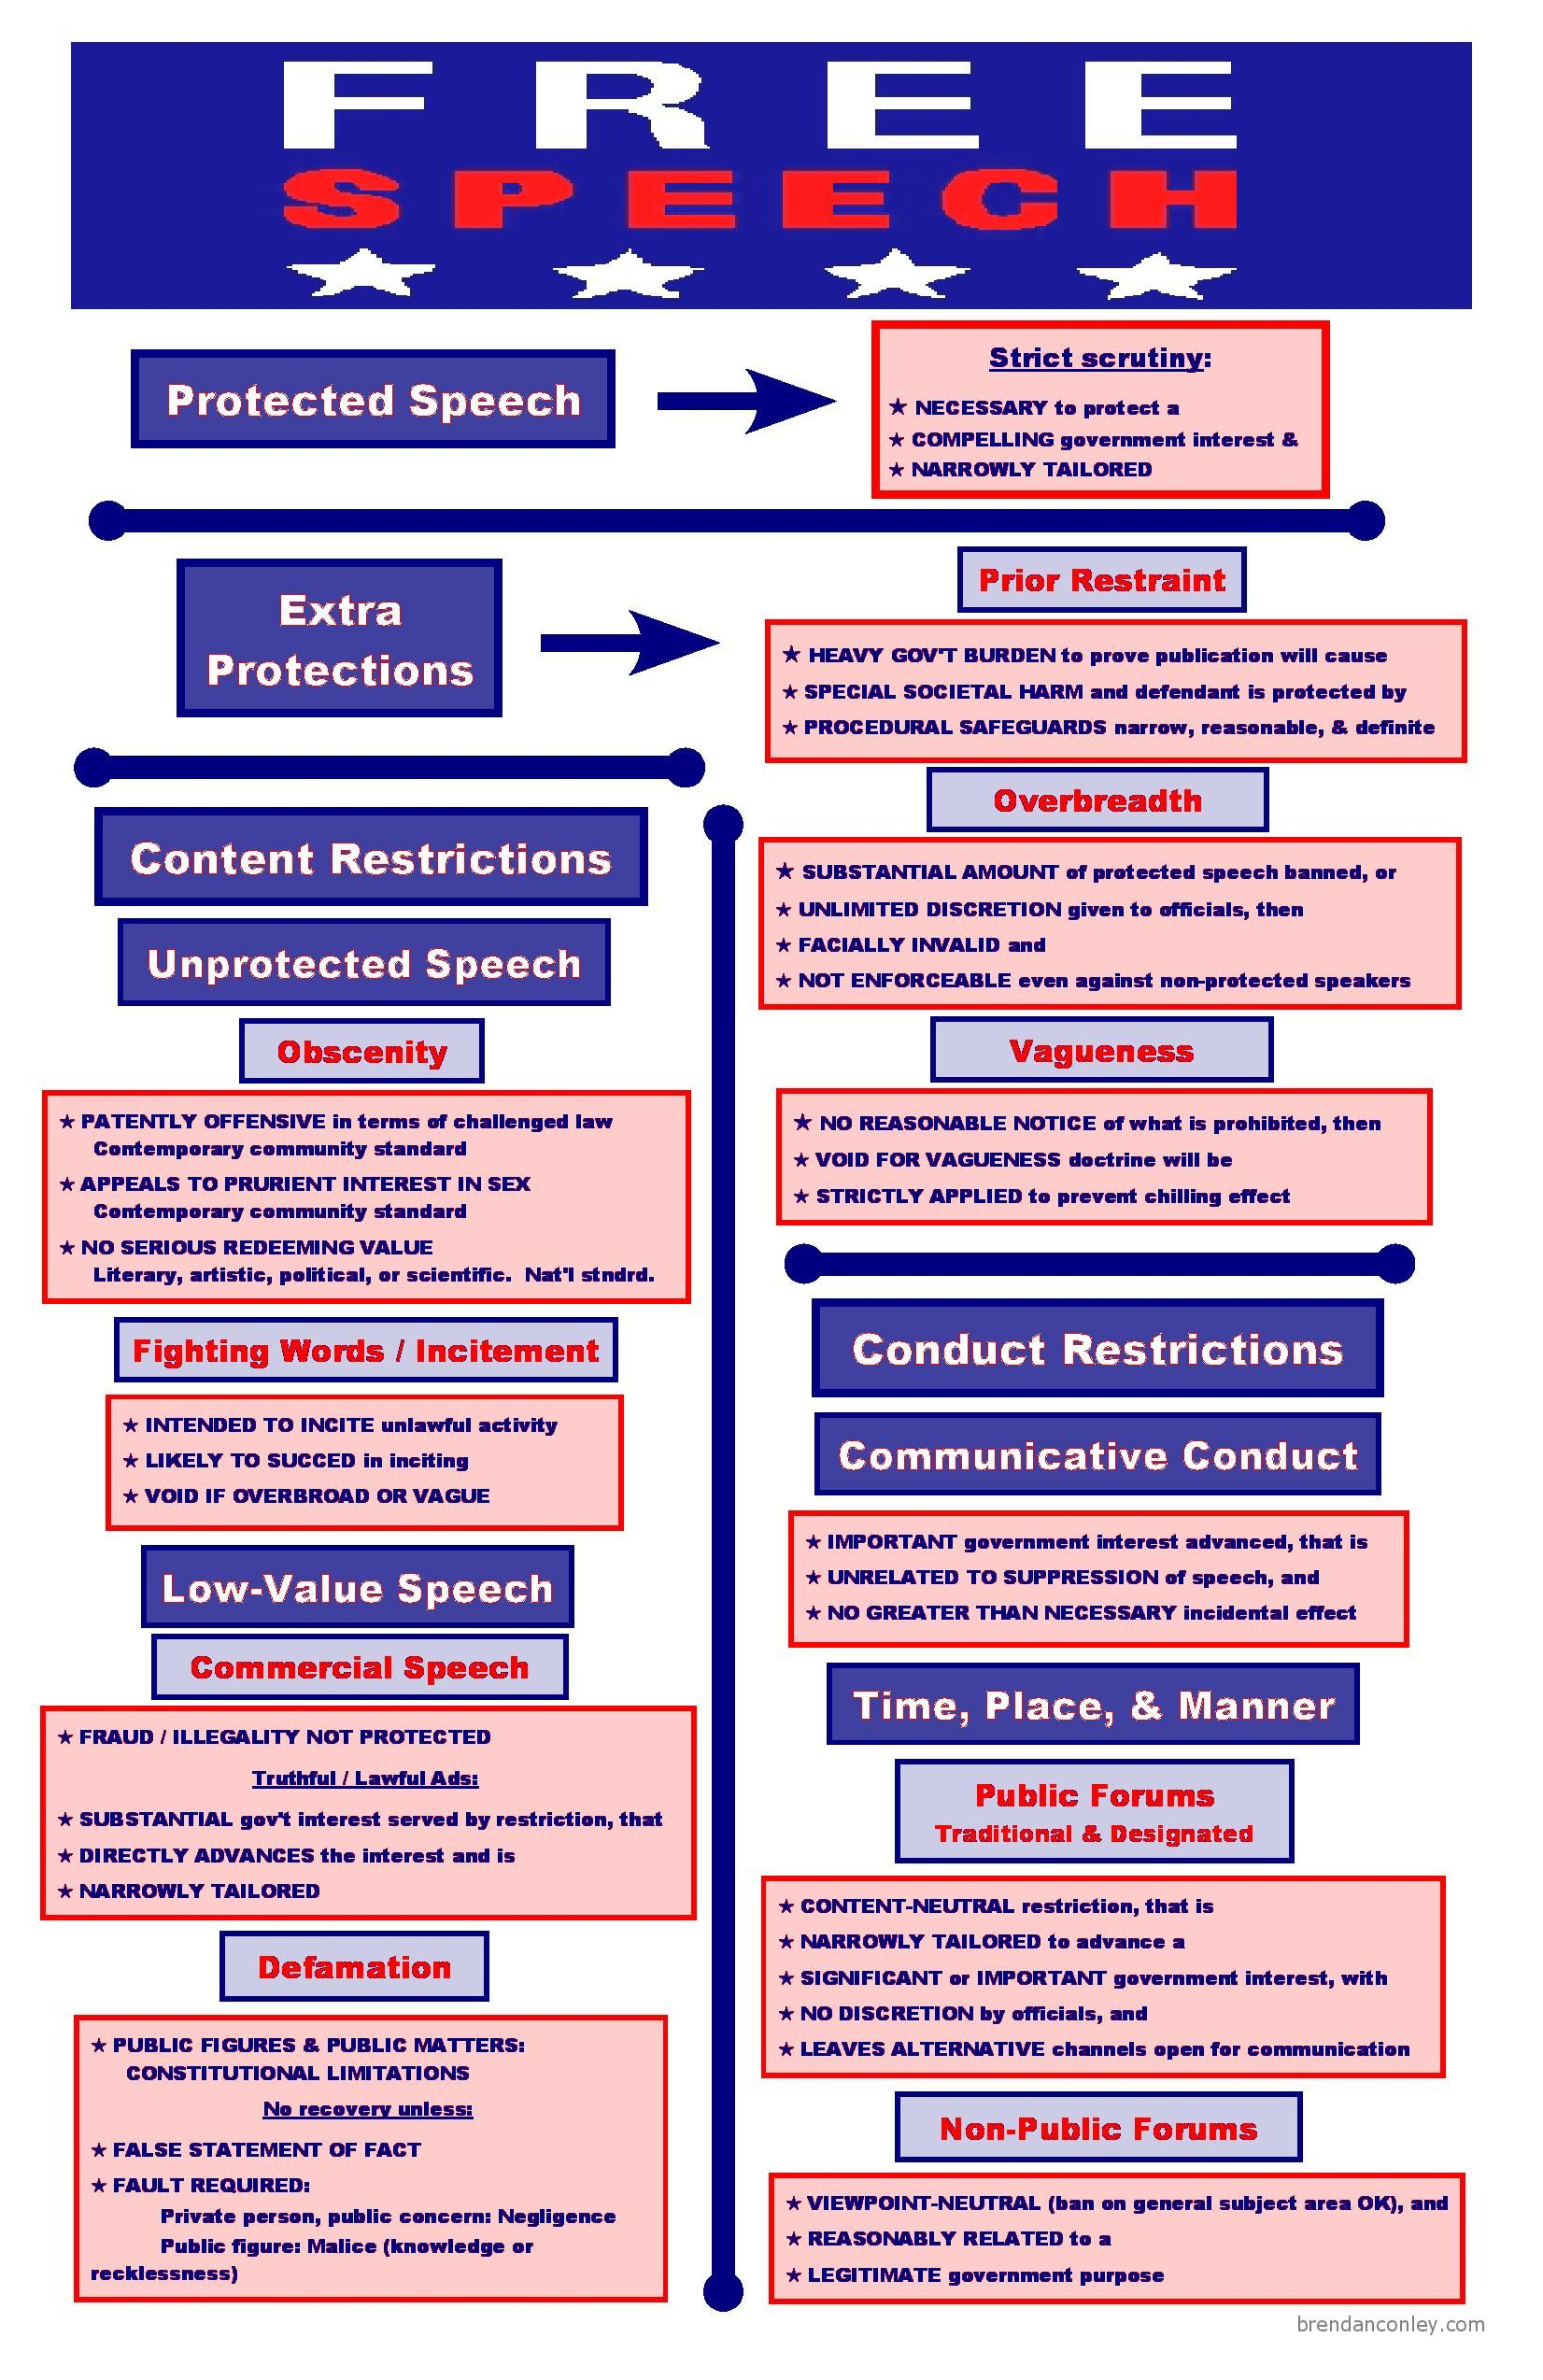 First amendment essay visual law library  collection of legal visuals also best bar exam charts images school paralegal torts rh pinterest